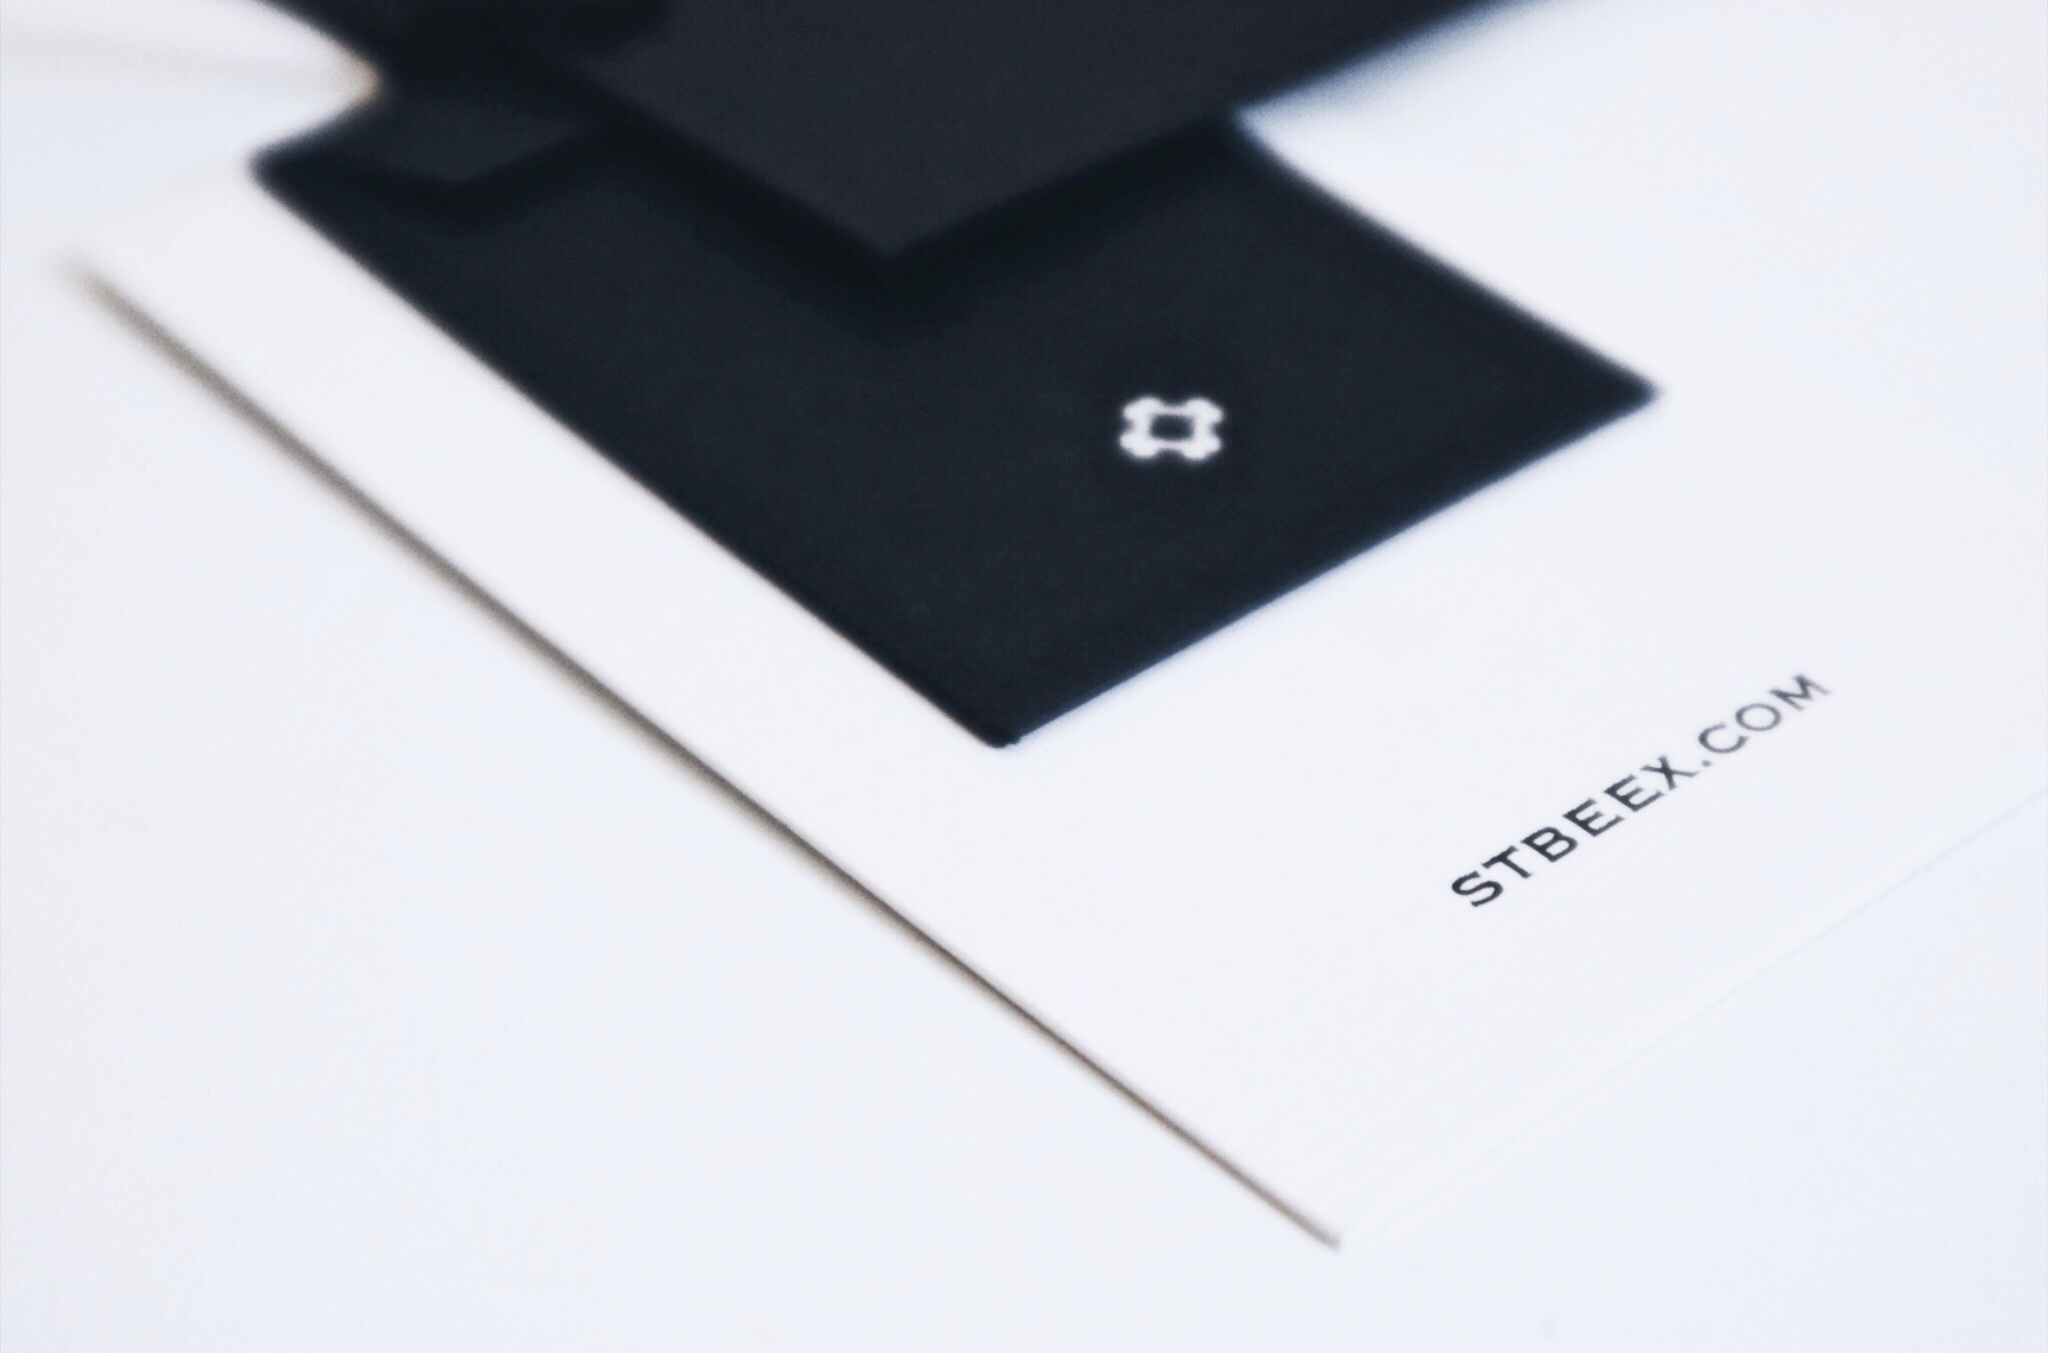 st.beex garment tags